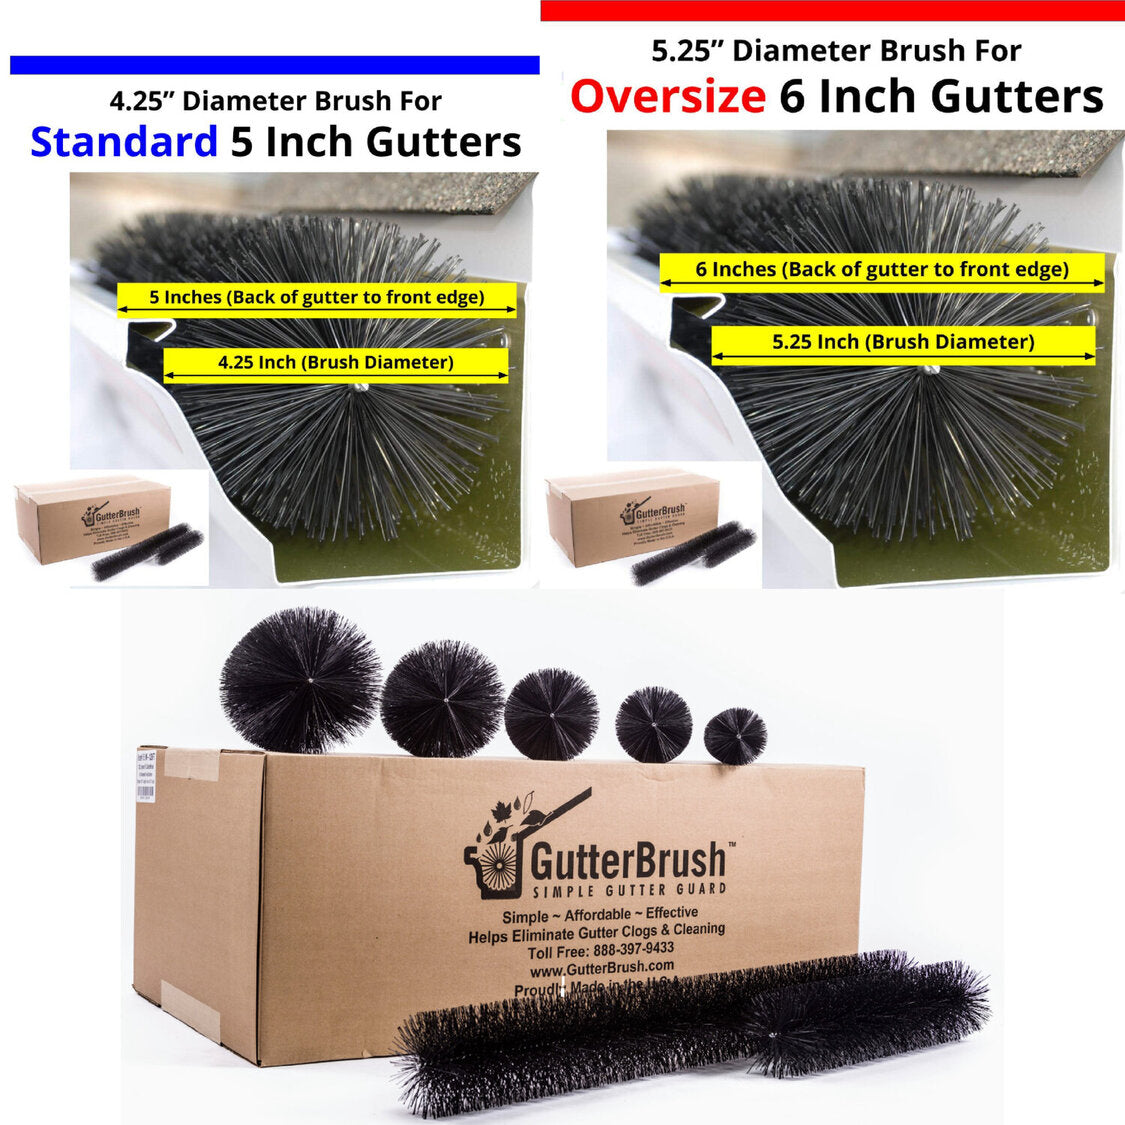 Gutter Guard Size Options GutterBrush Leaf Guard